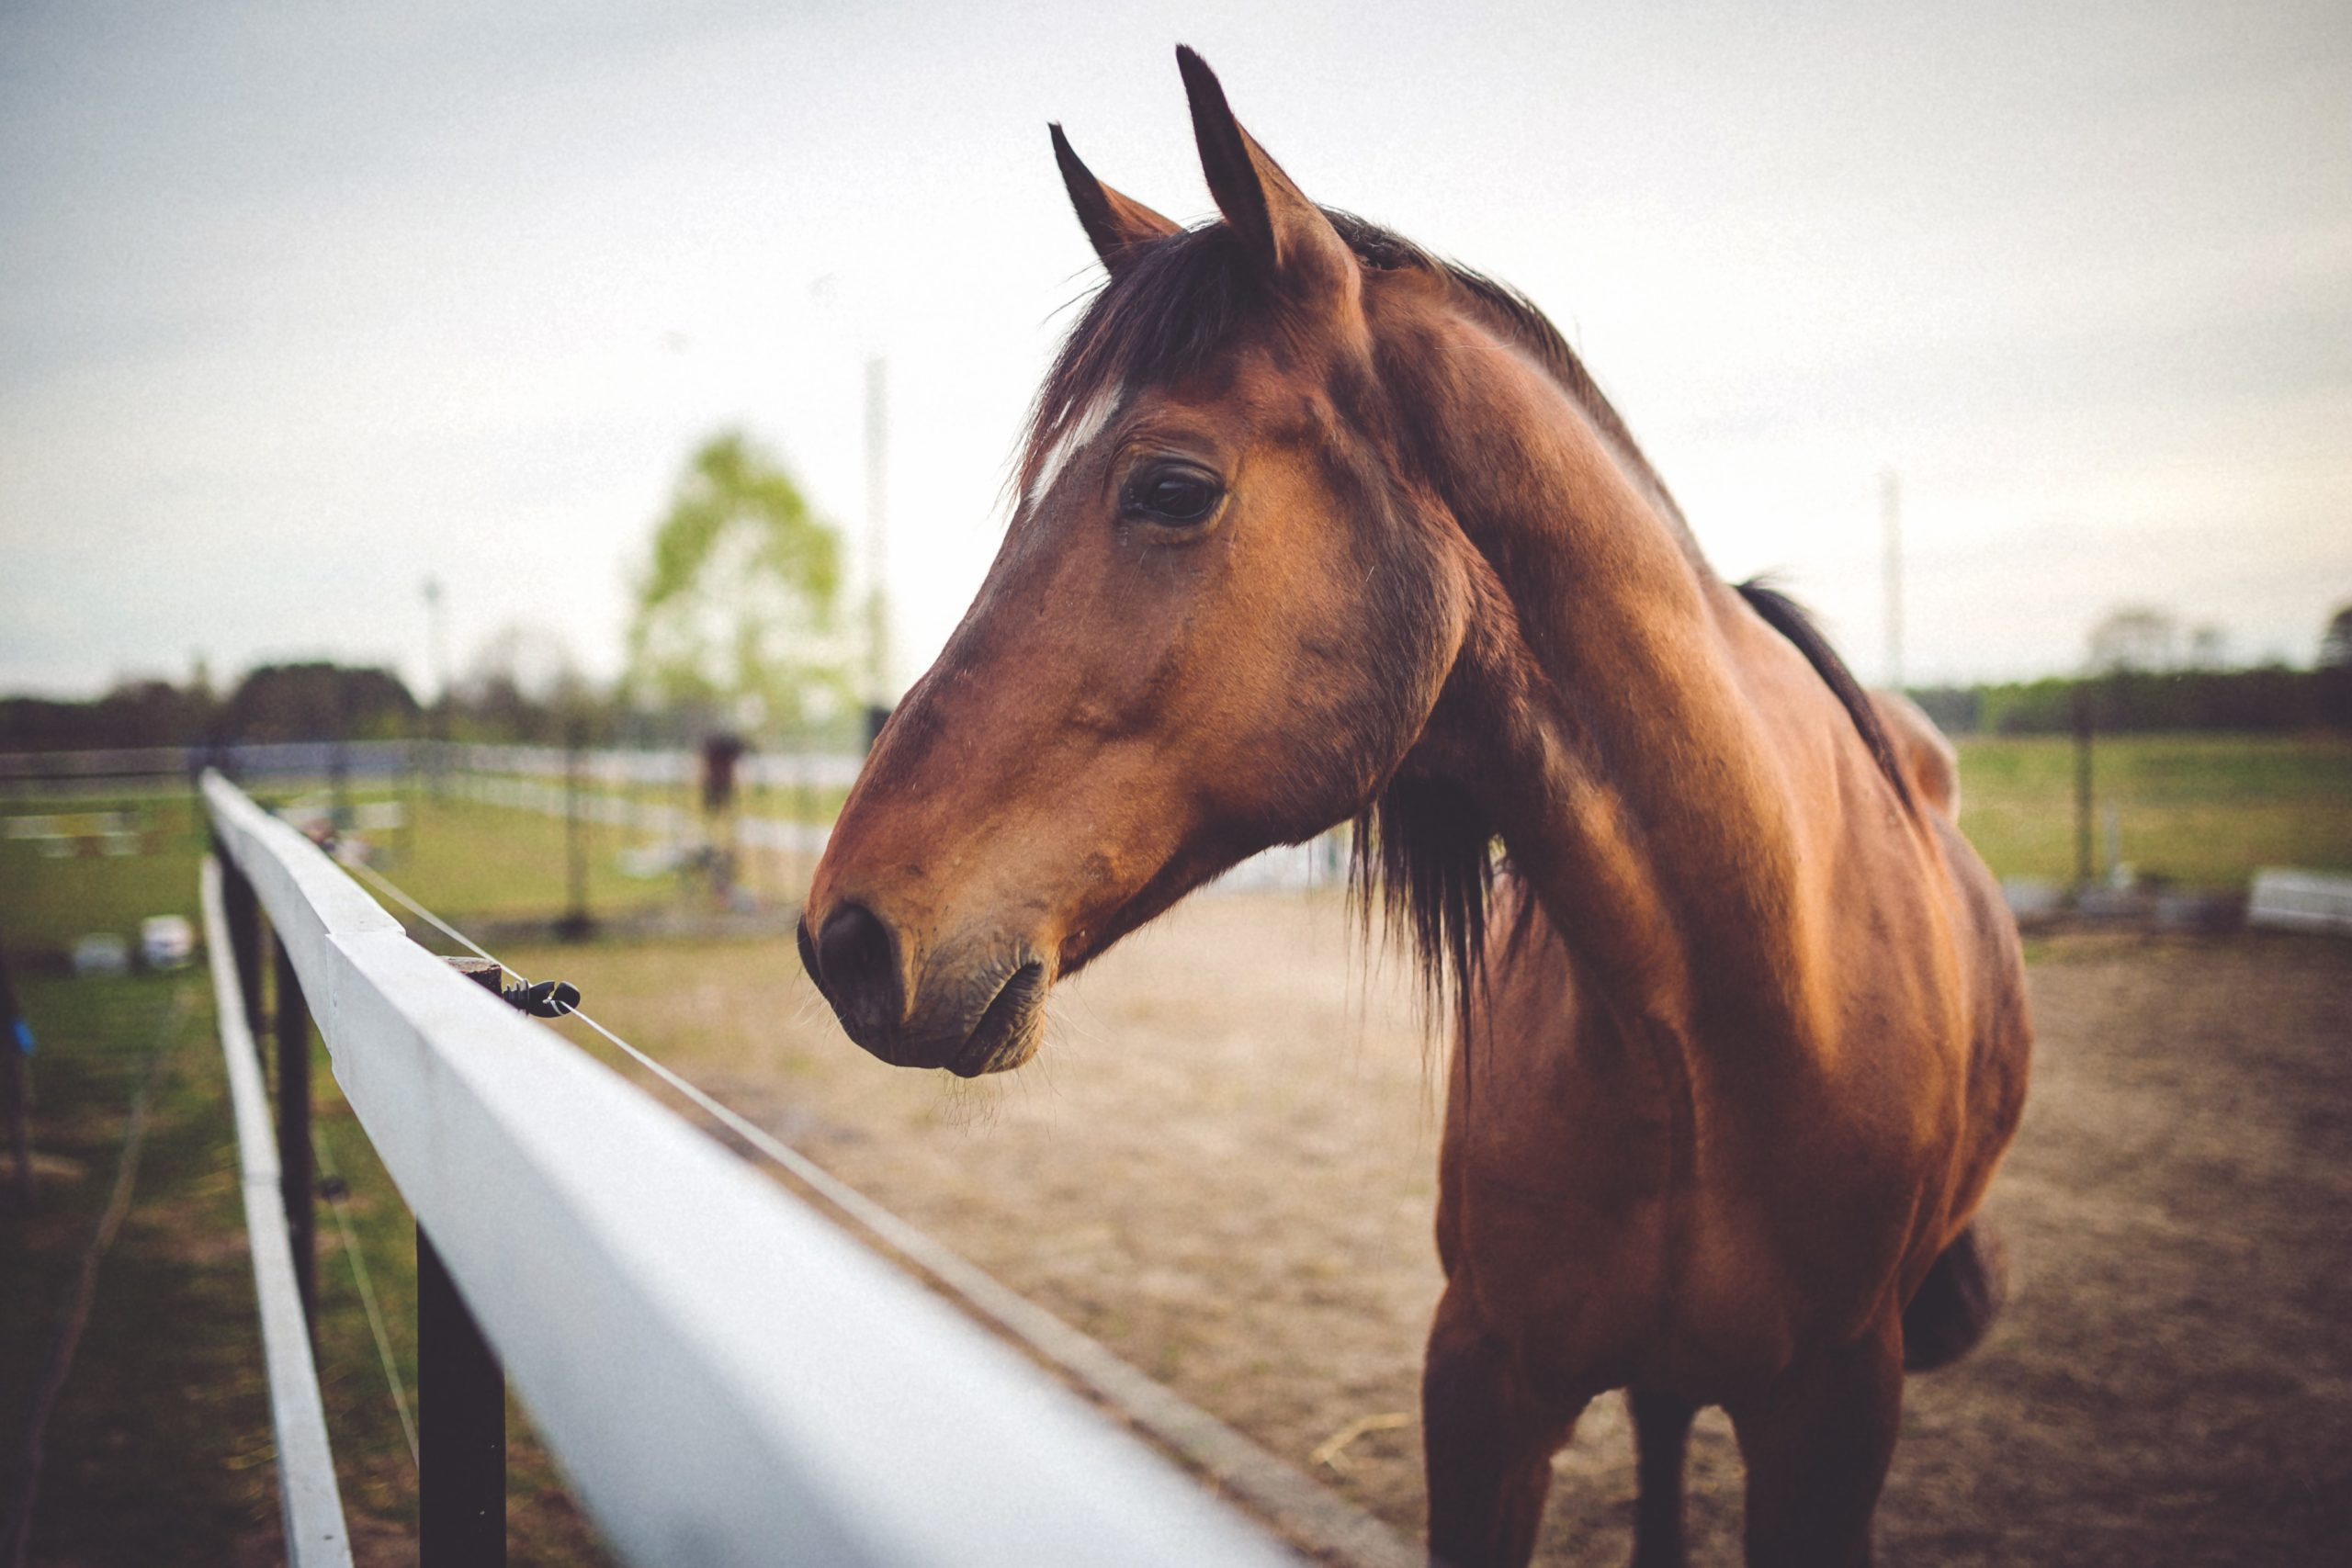 What is a good way to teach a horse the flying change?